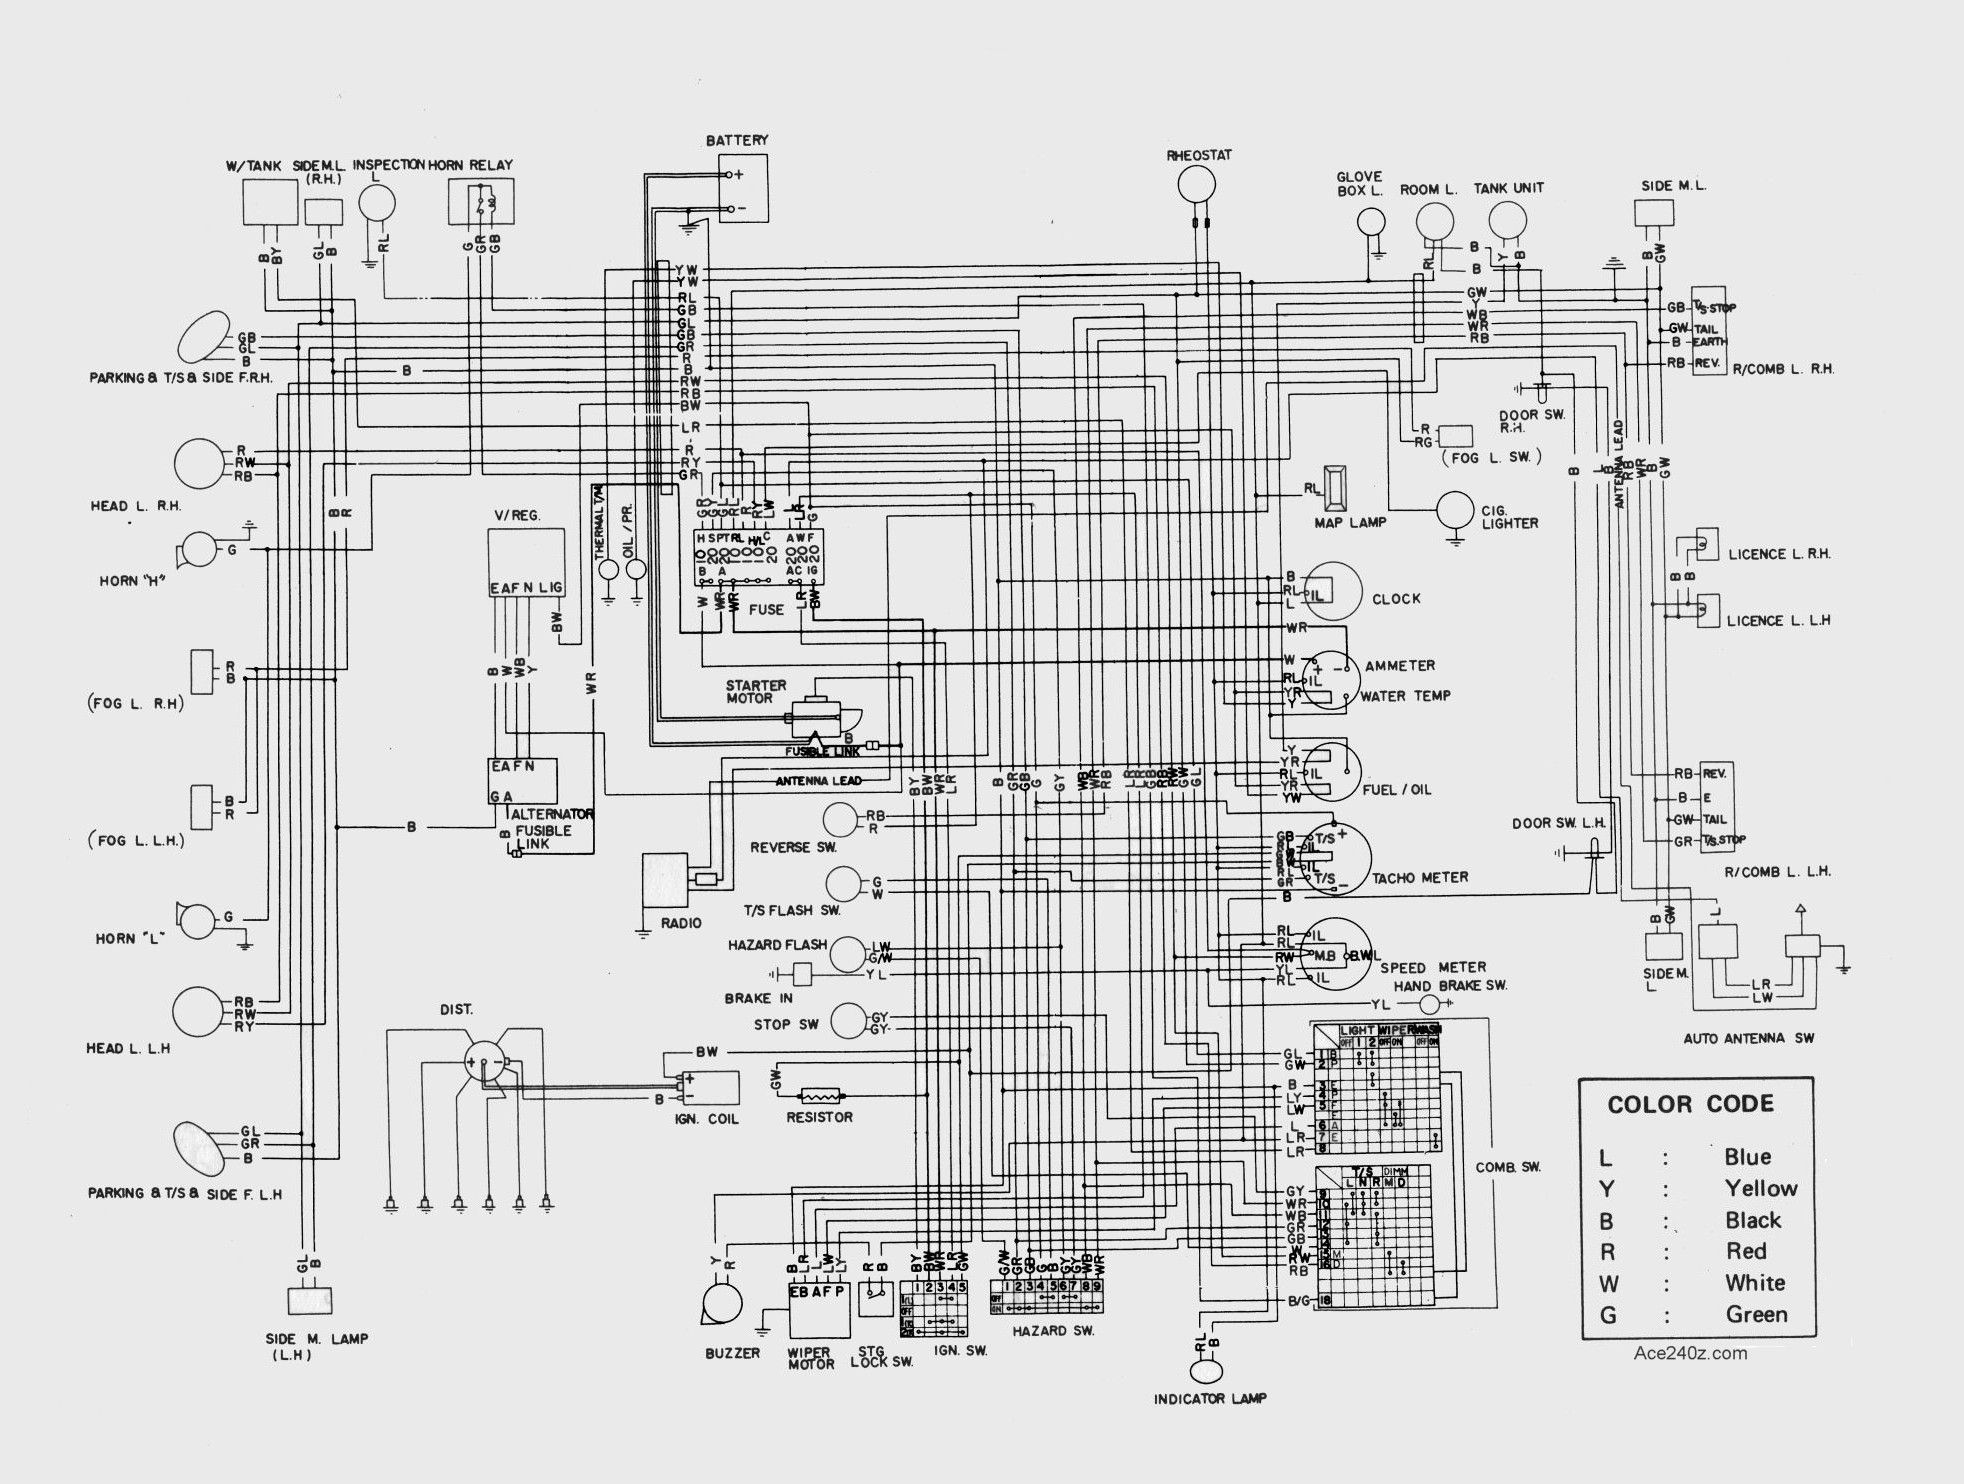 Ford Mustang Wiring Diagram Image Details